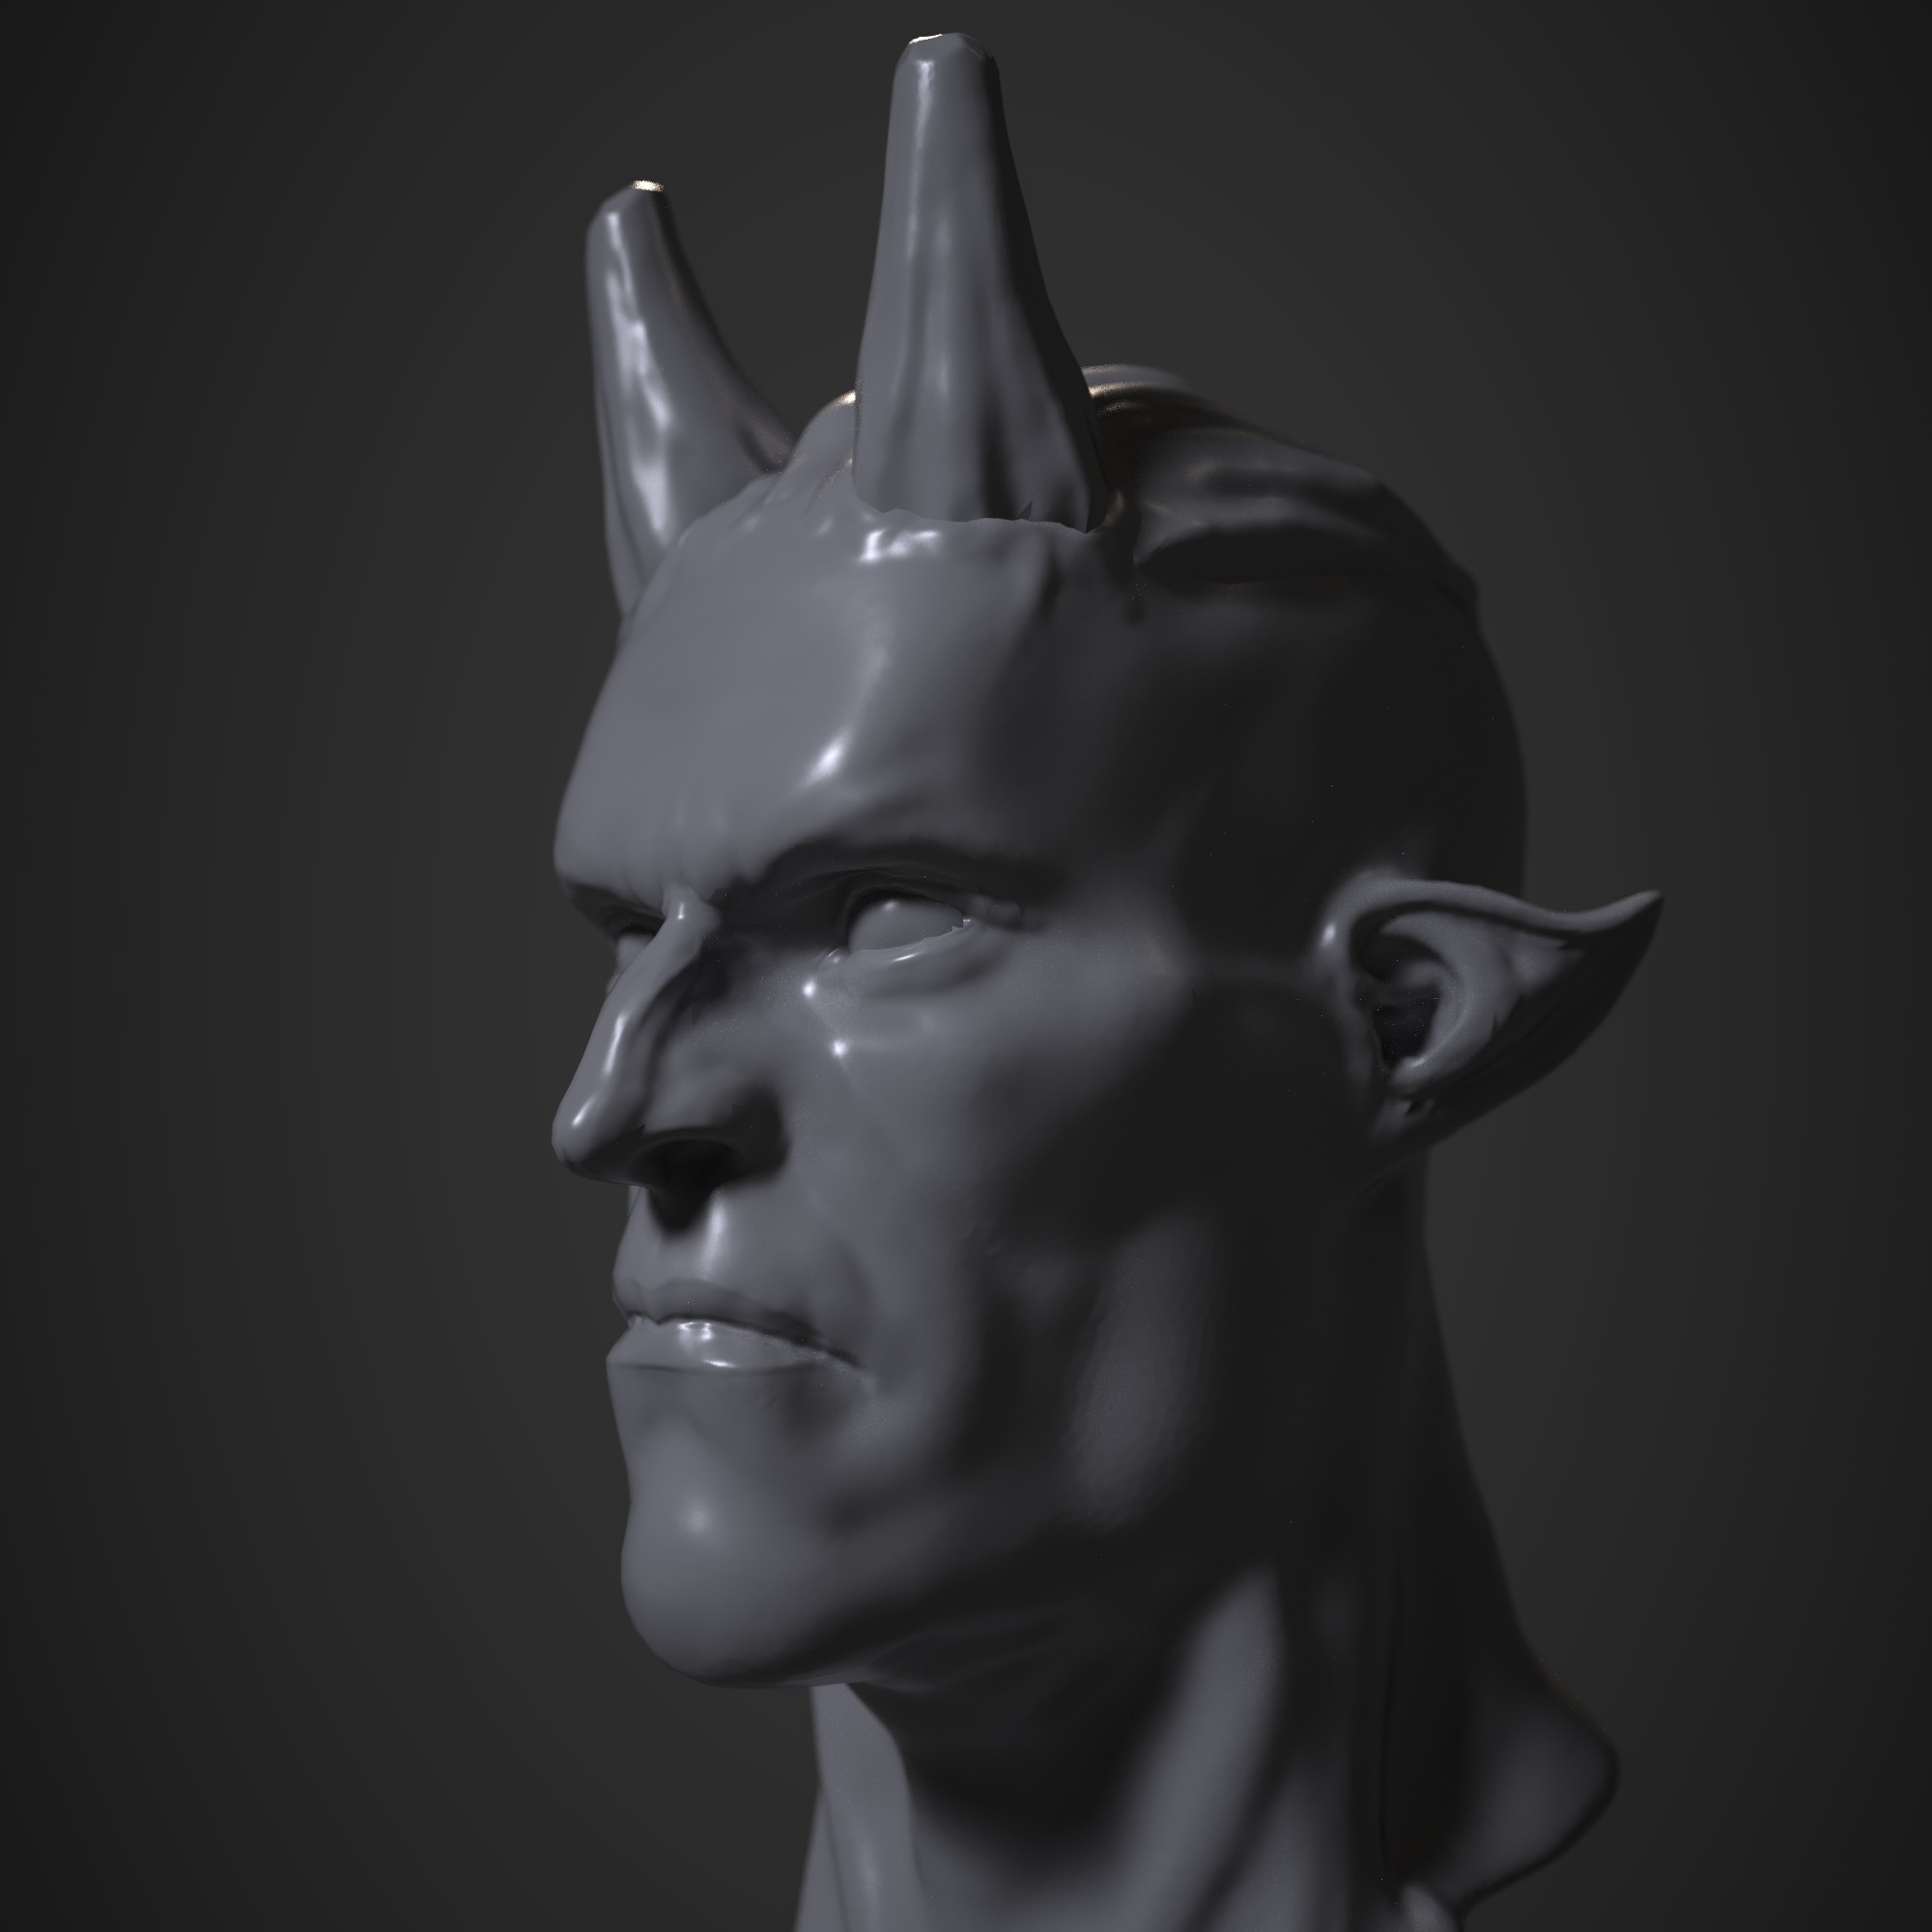 jz_CreatureHead_ZBrush_SP_01_01.jpg